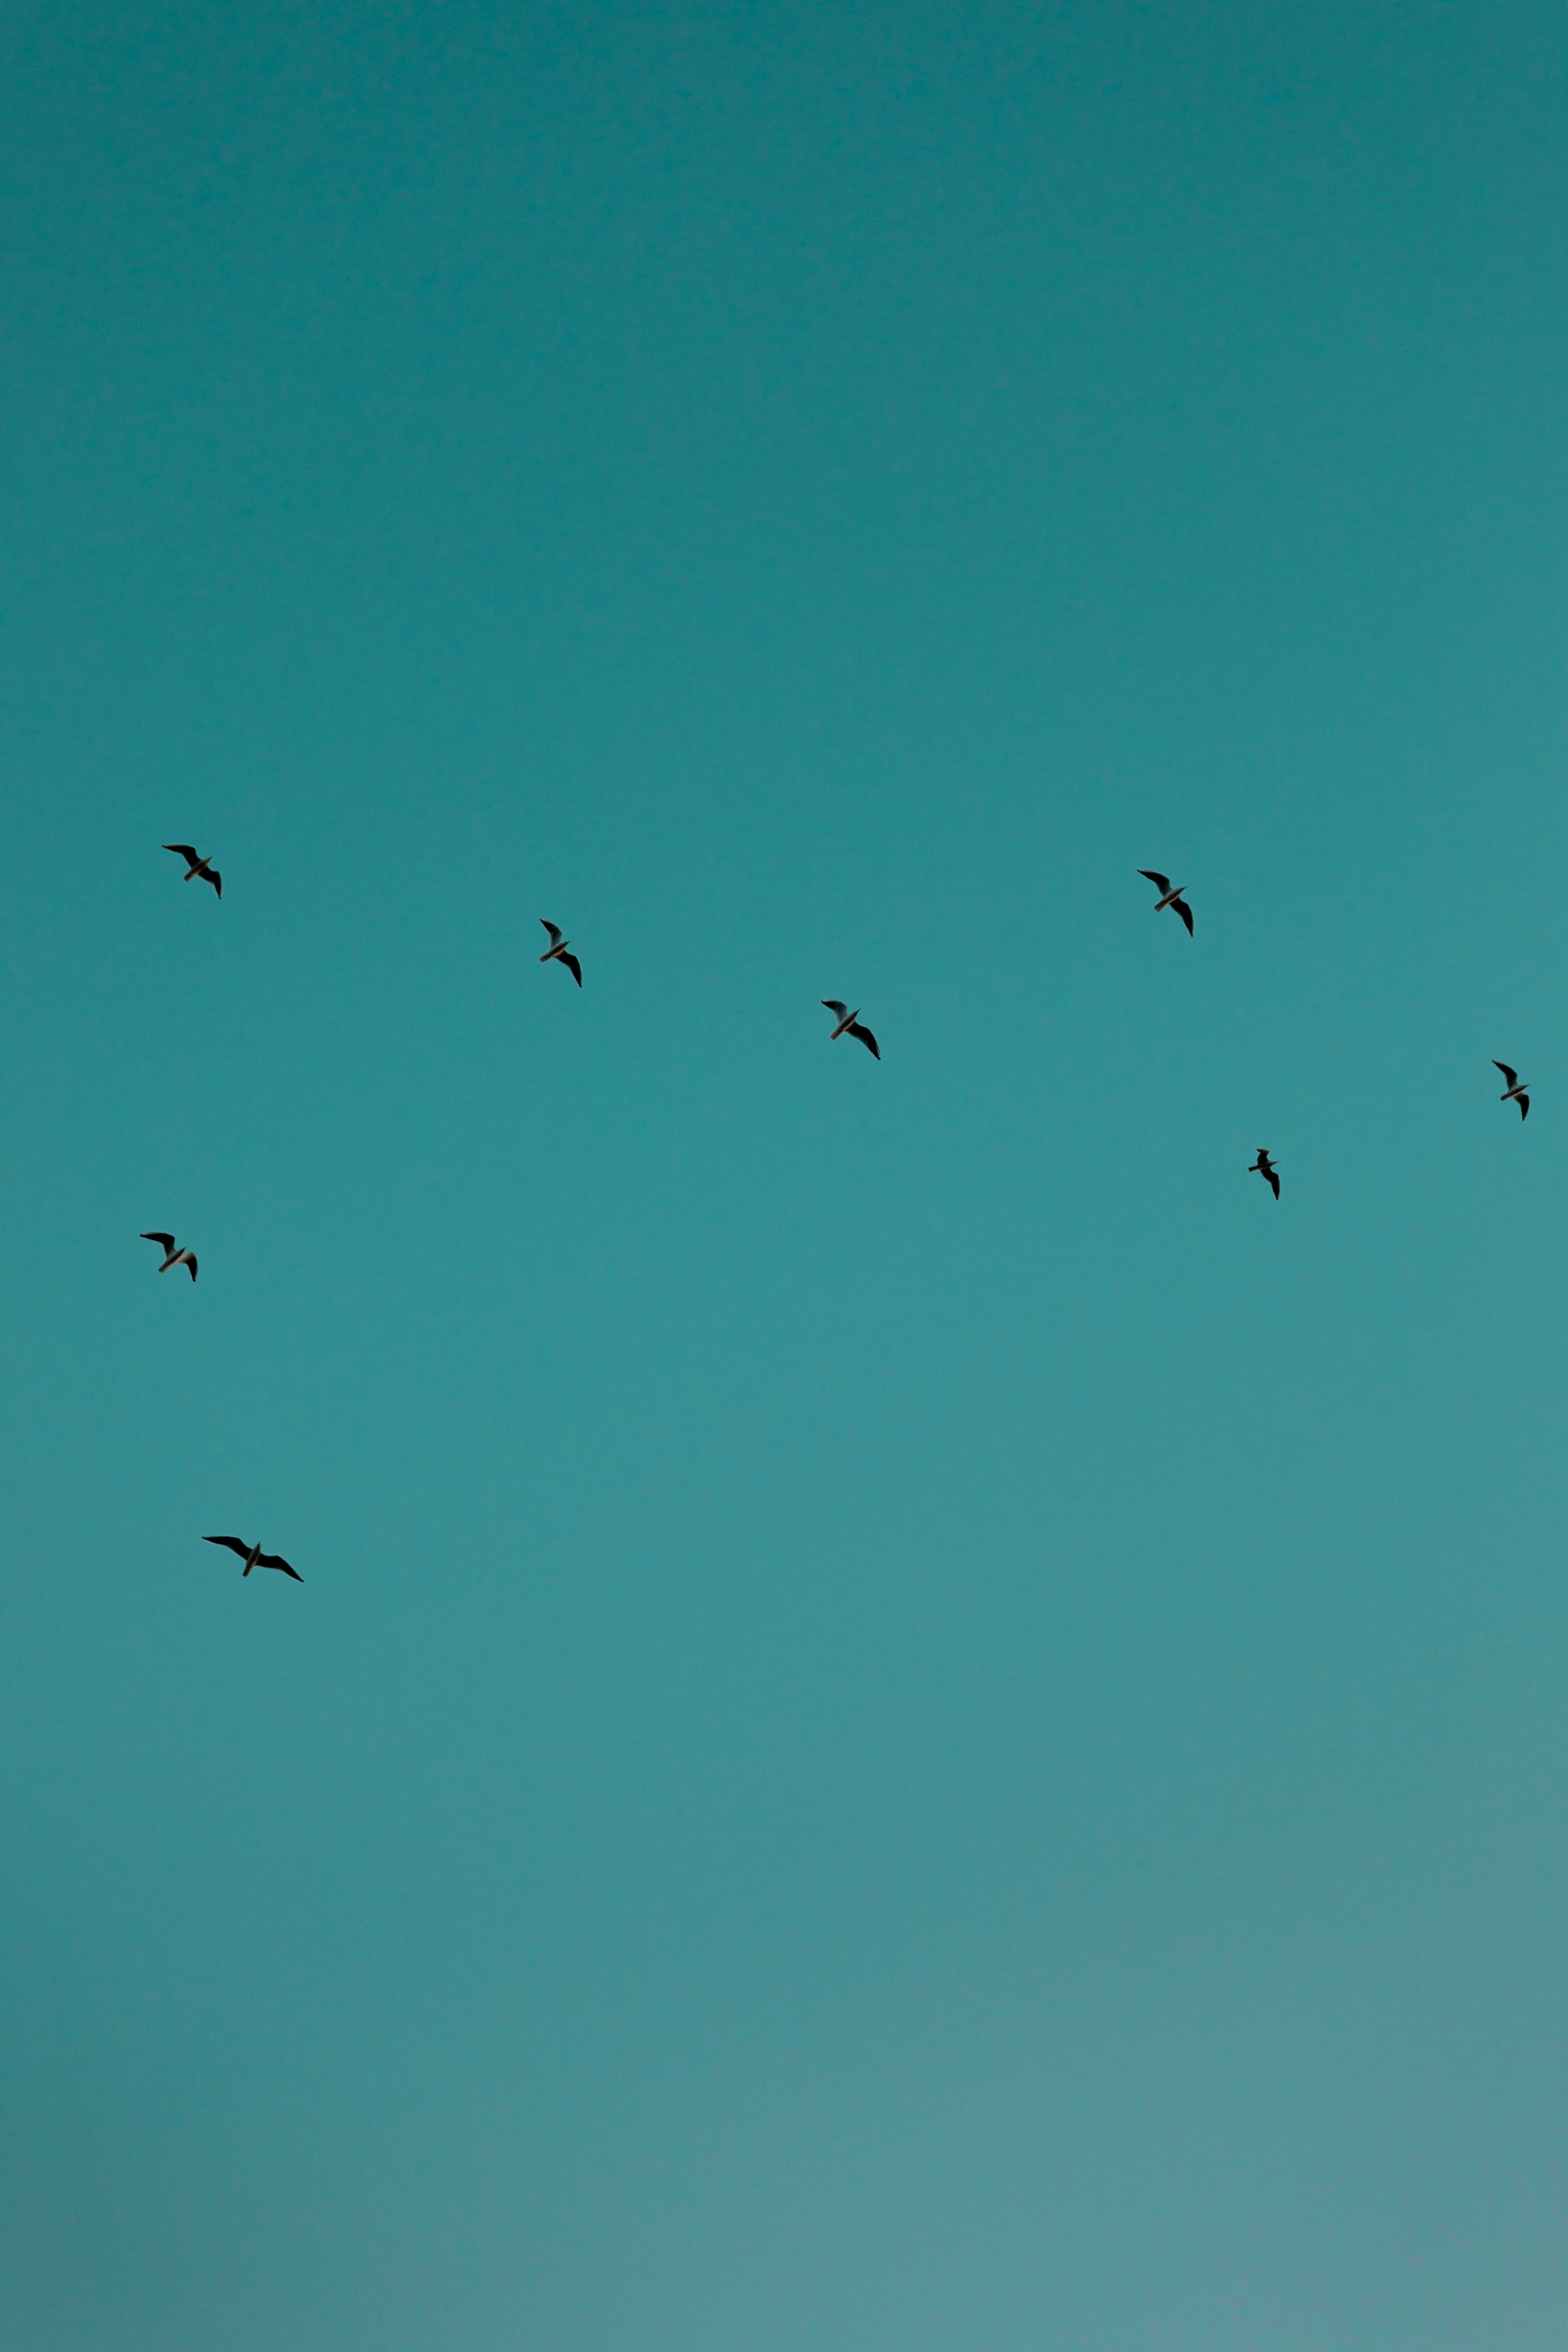 birds-in-flight.jpg